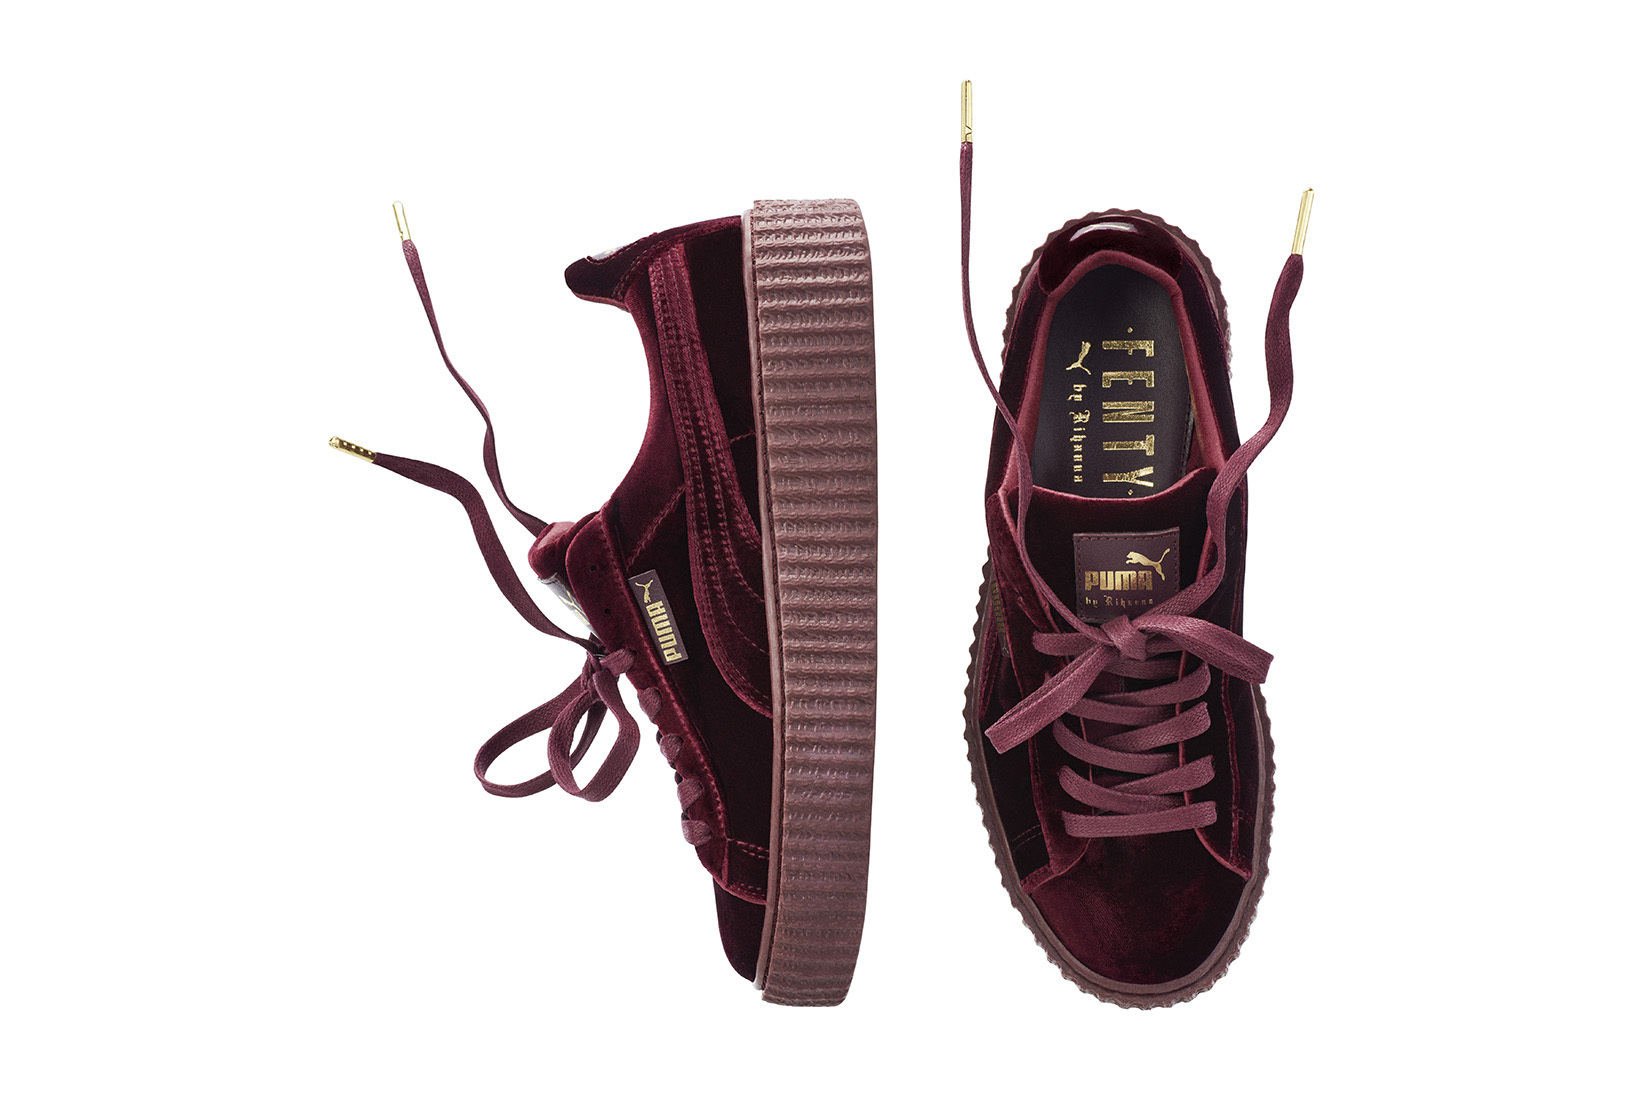 les nouvelles creepers puma by rihanna juste sublimes. Black Bedroom Furniture Sets. Home Design Ideas